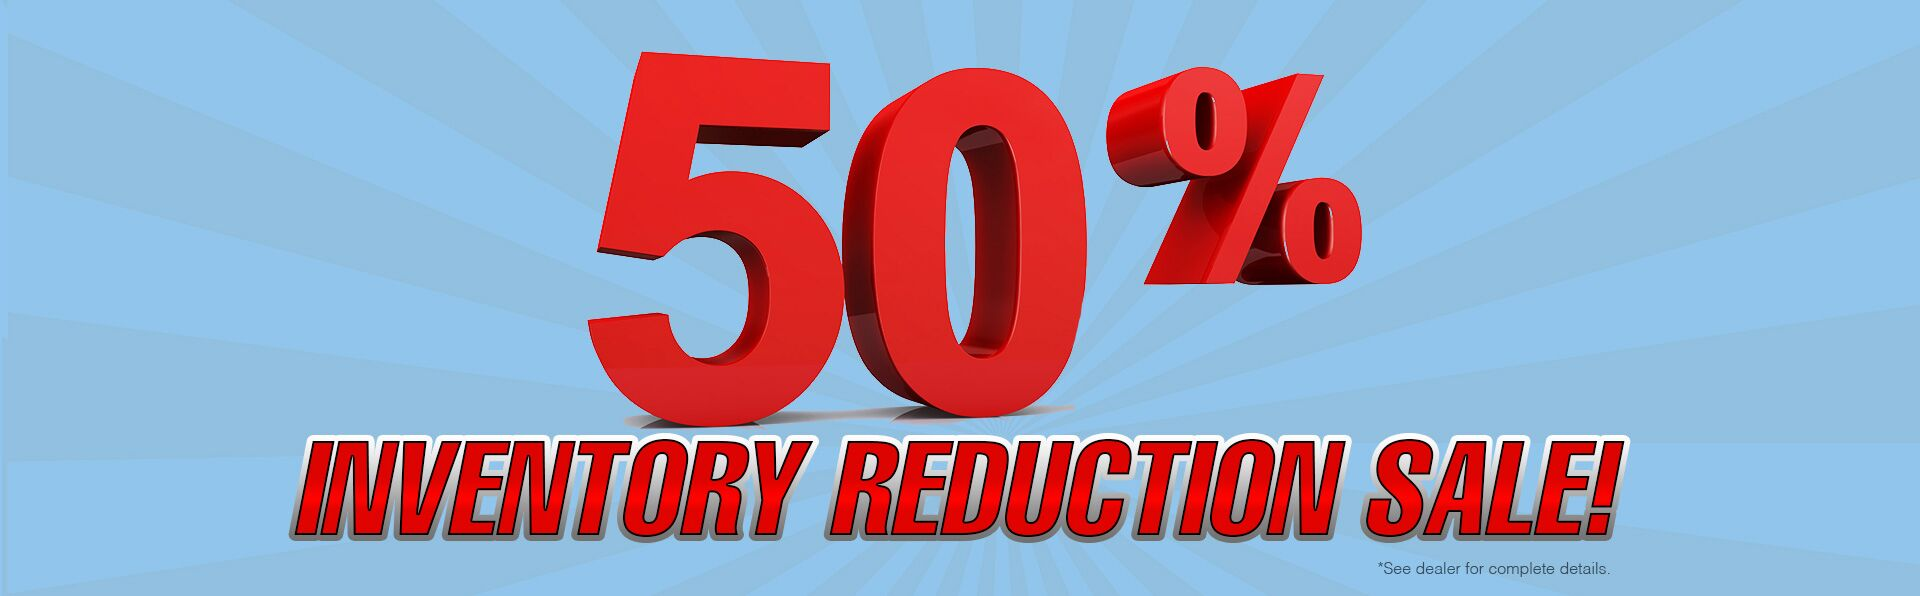 50% Inventory Reduction